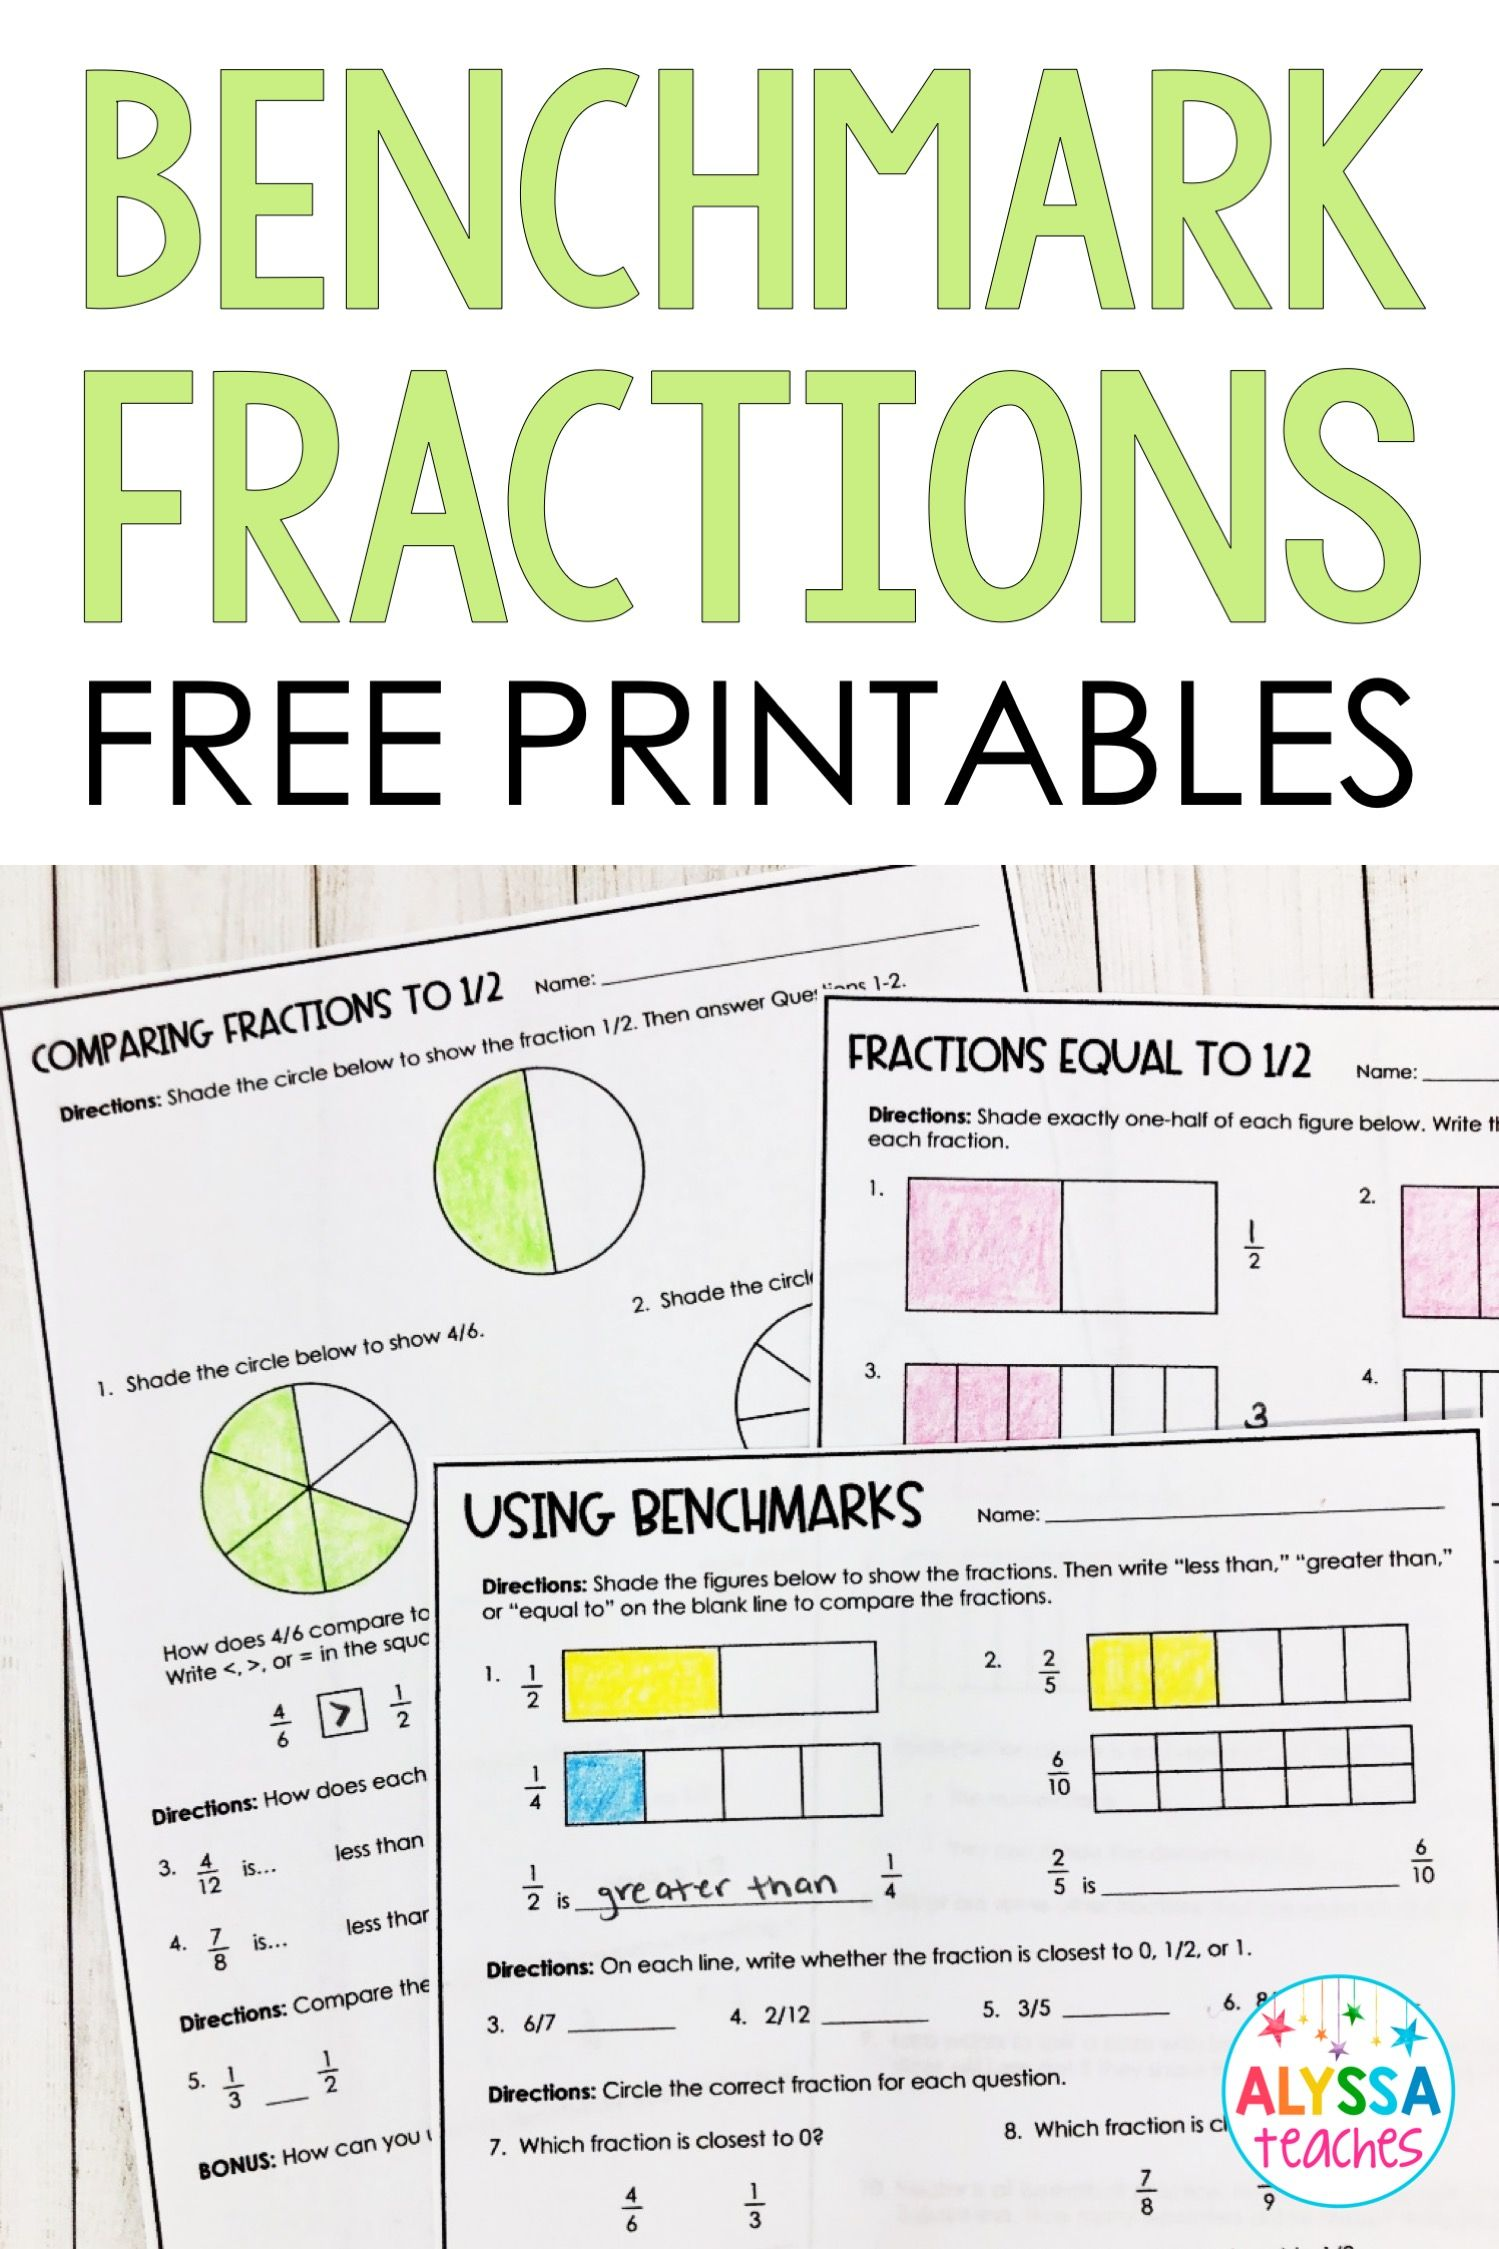 Benchmarks Fractions Poster And Worksheets